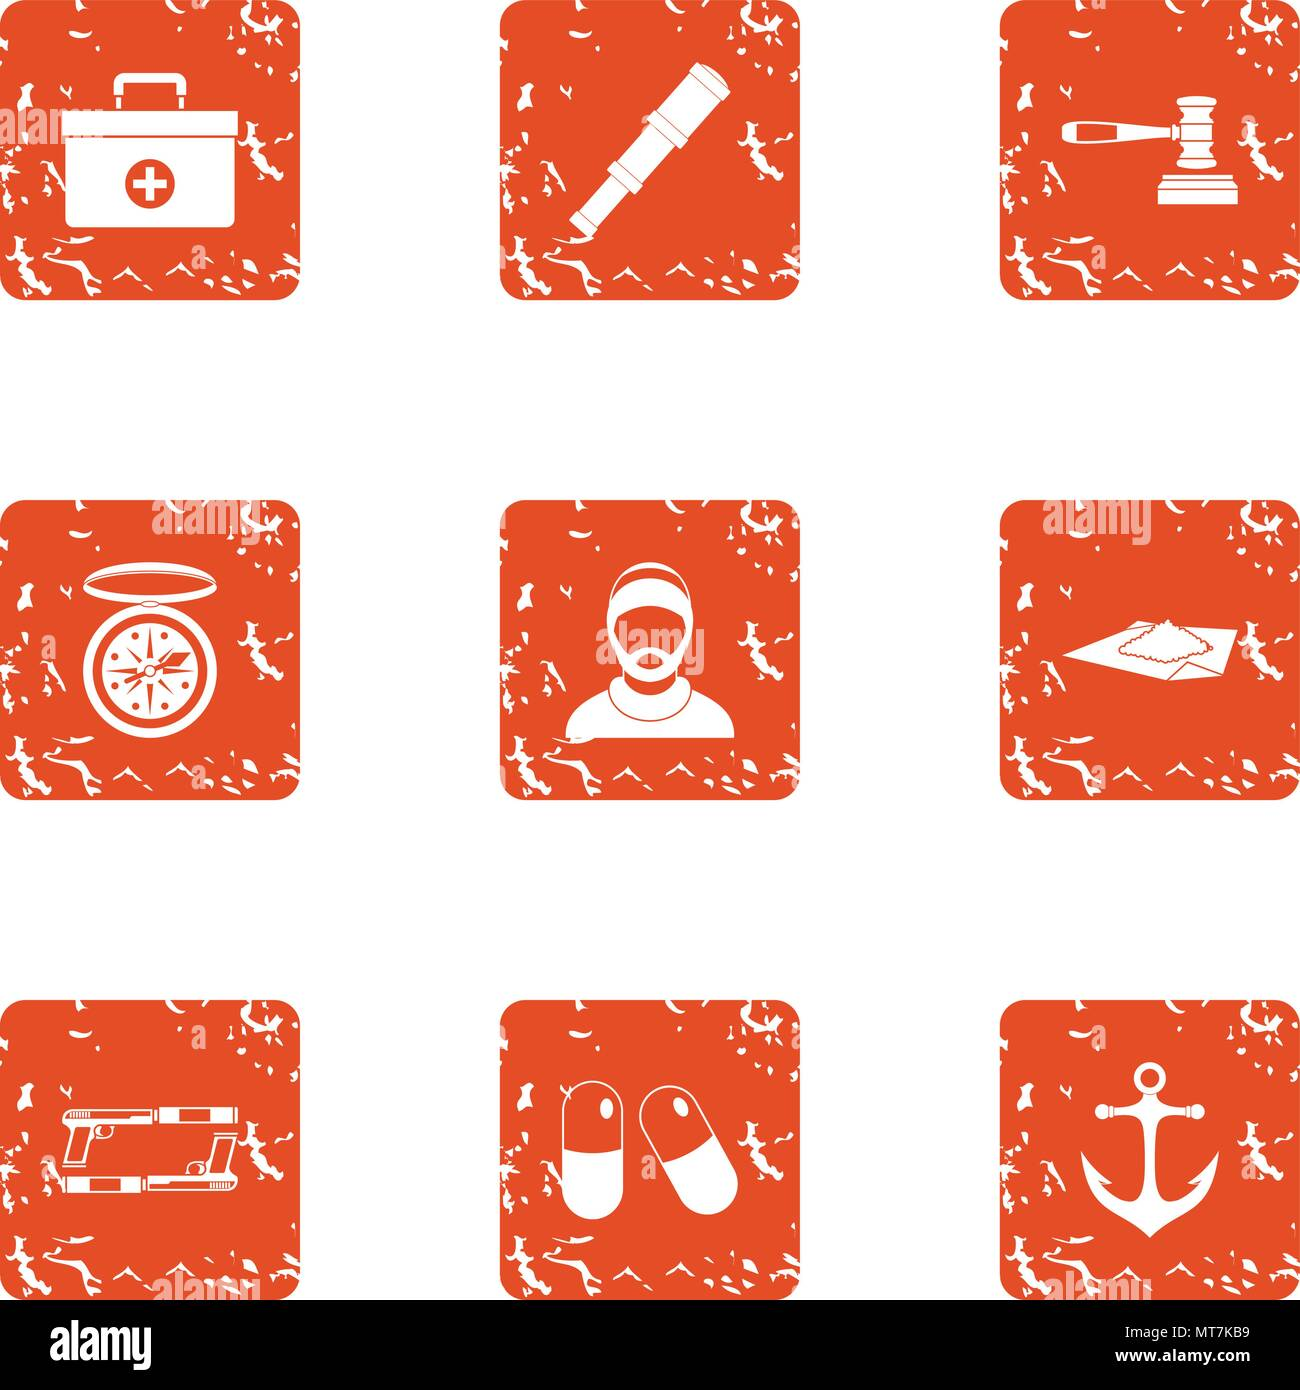 Doctor on ship icons set, grunge style - Stock Vector